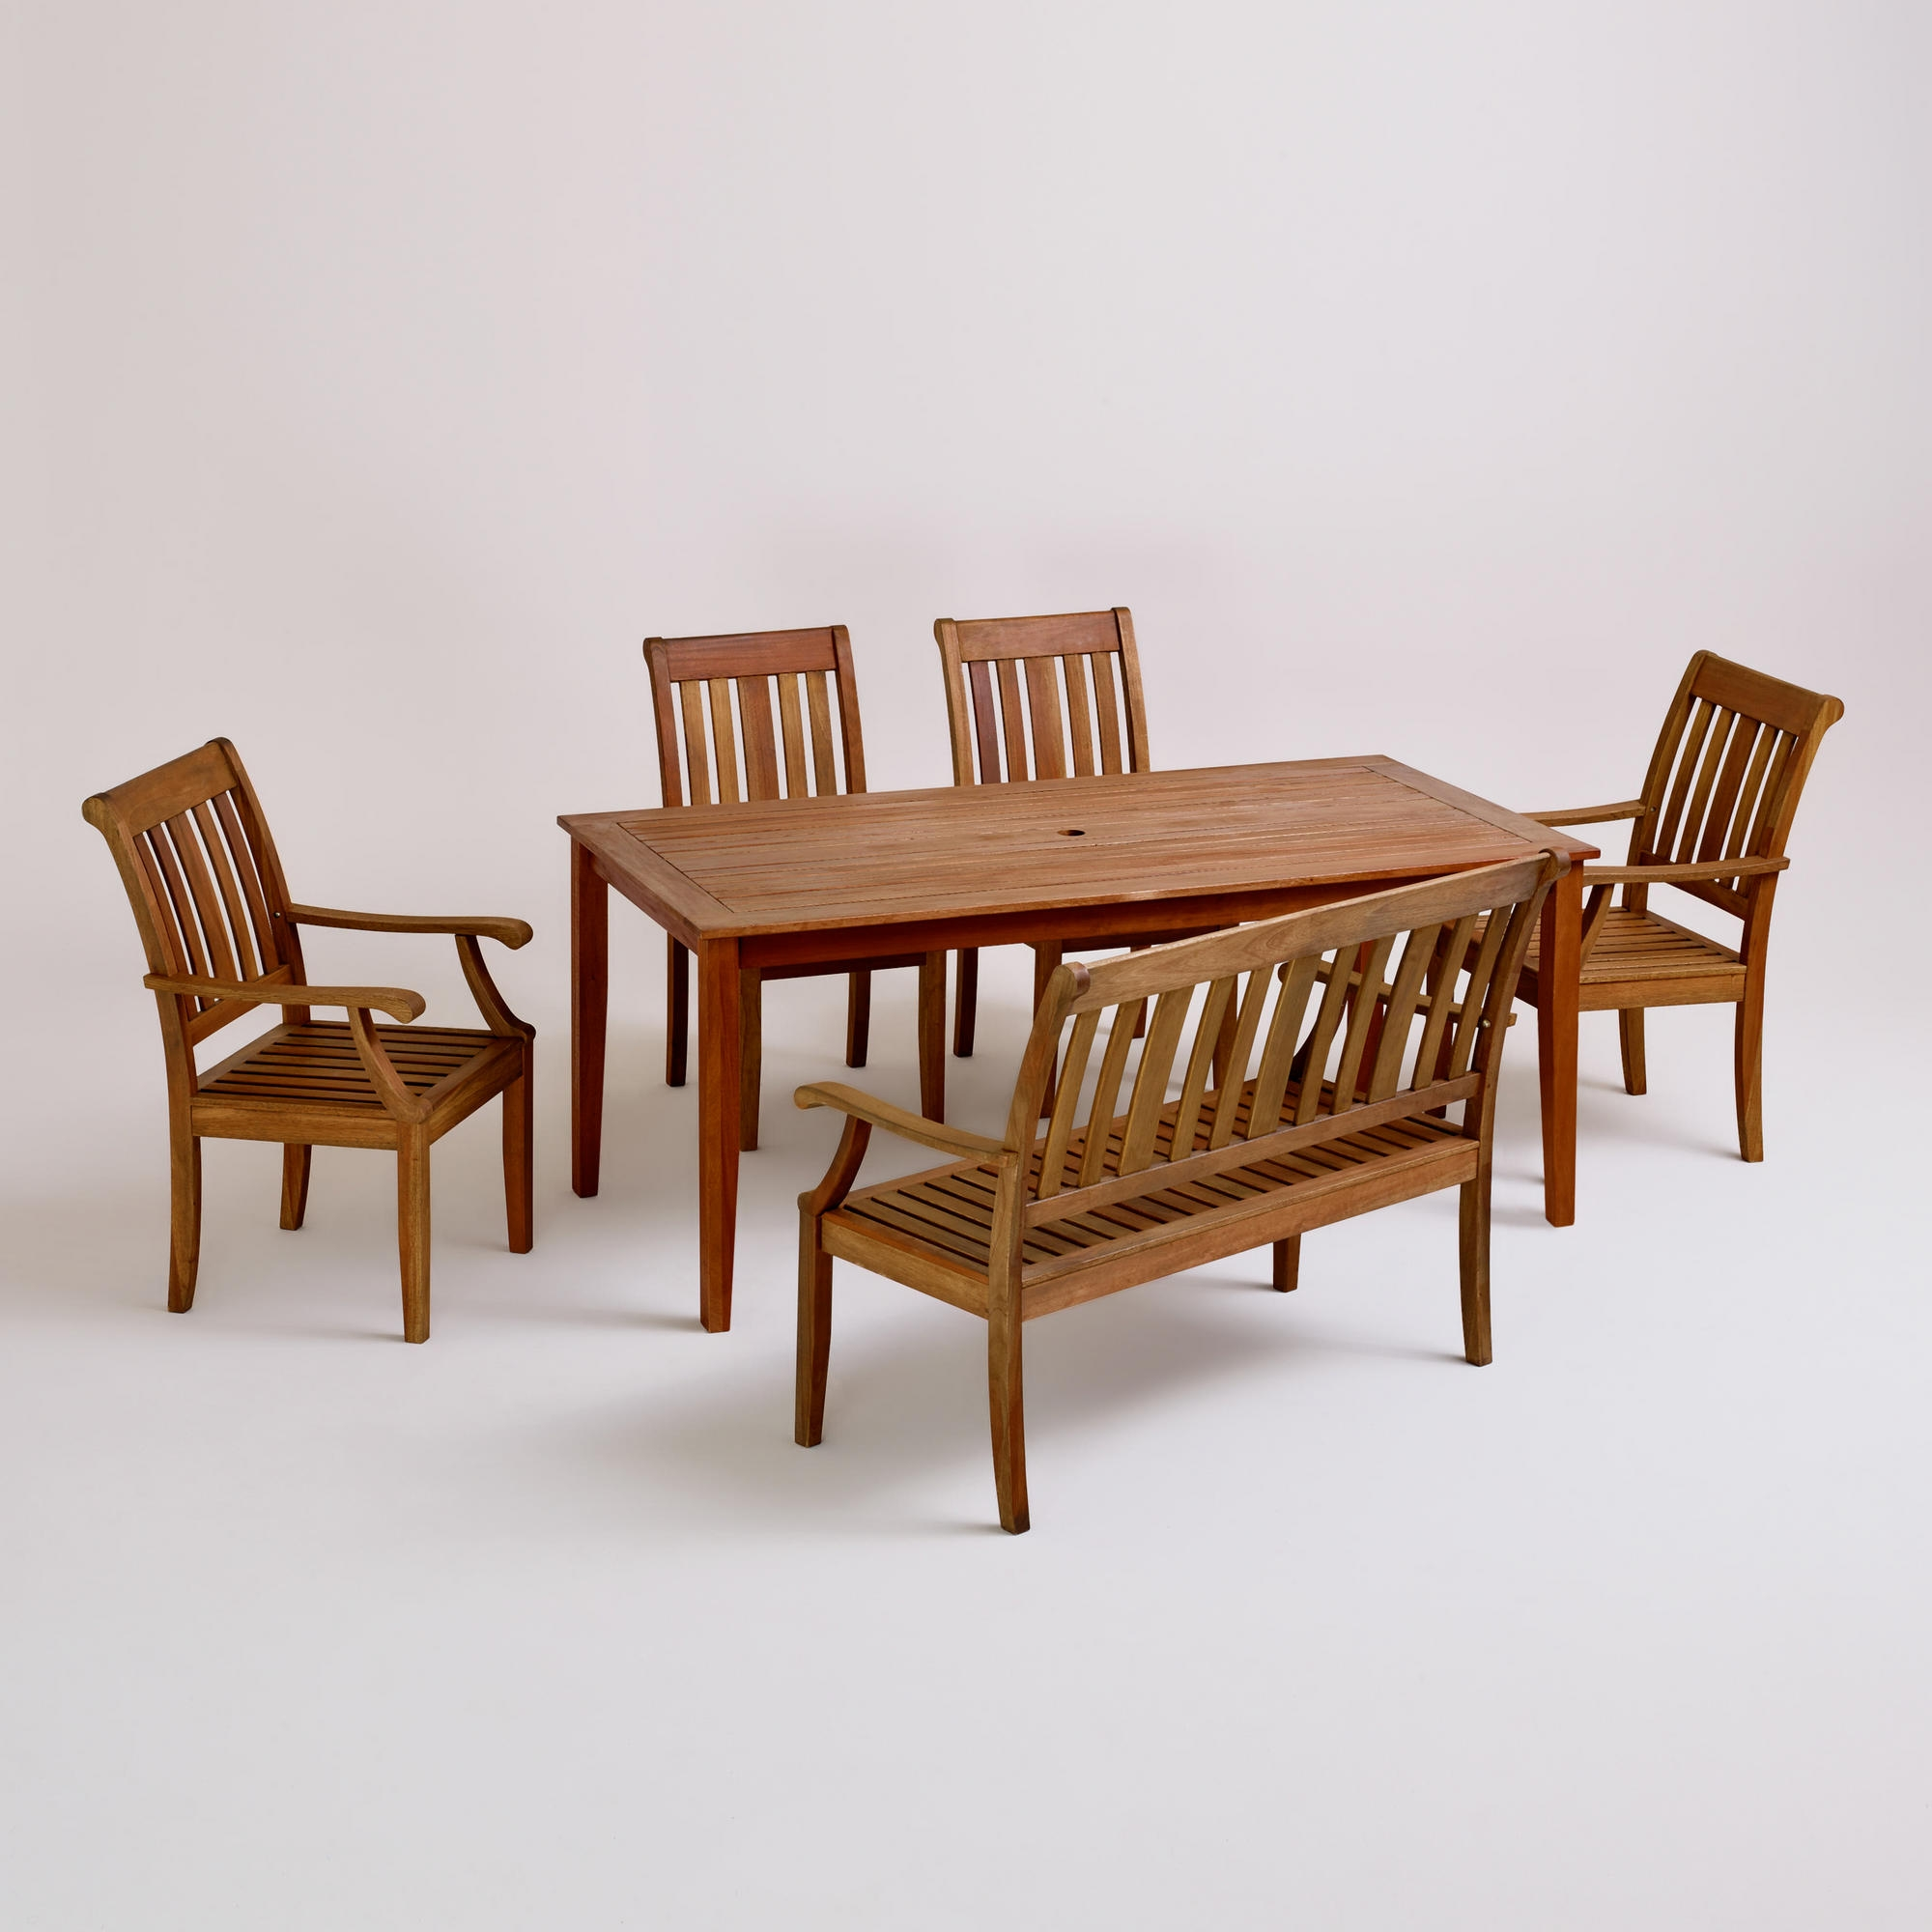 World Market Teak Patio Furniture Interior Design Photos Gallery